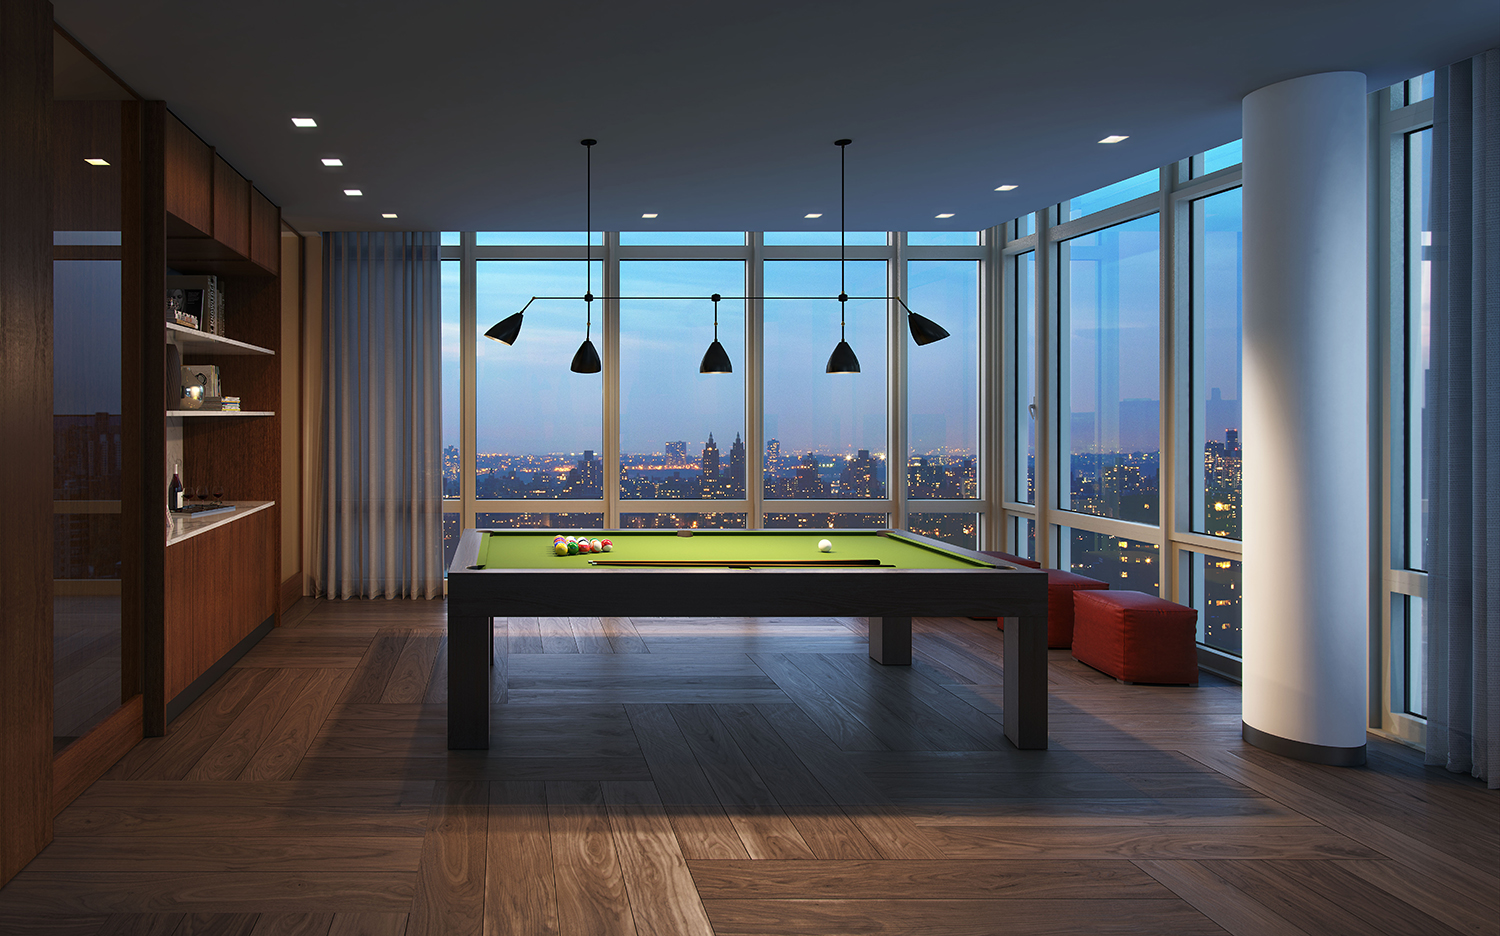 Rendering of 39th floor game room at the Easton. Credit: Moso Studio